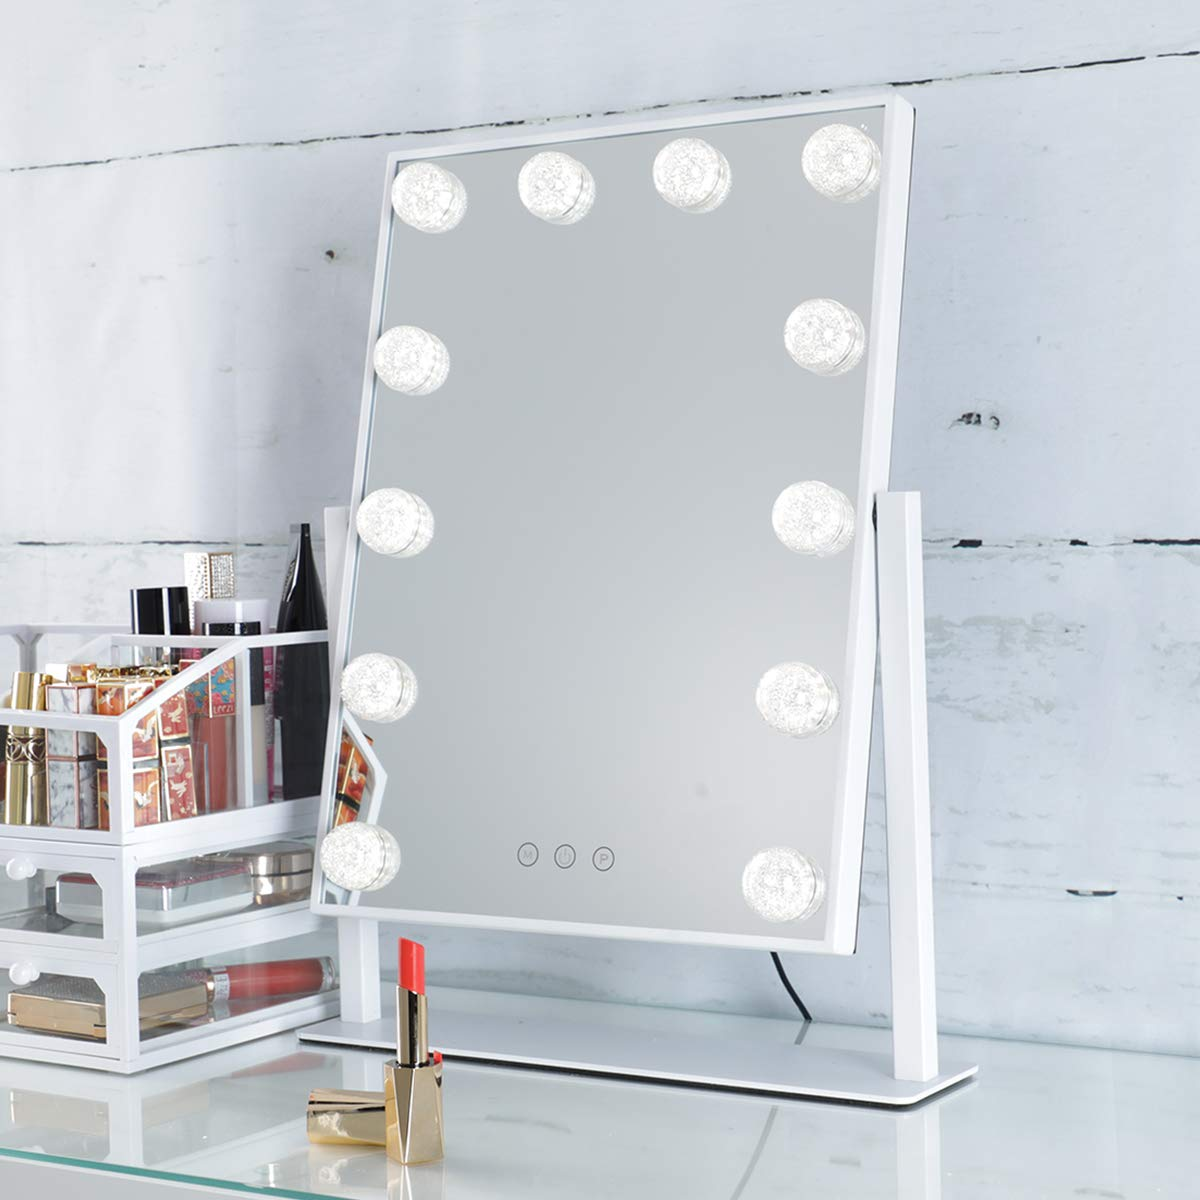 SHOWTIMEZ Lighted Vanity Mirror, Hollywood Makeup Mirror with Lights, Tabletop mirror with Touch Screen, 3 Light Modes, Brightness adjustable, 11.8 x 16.1 inch, White